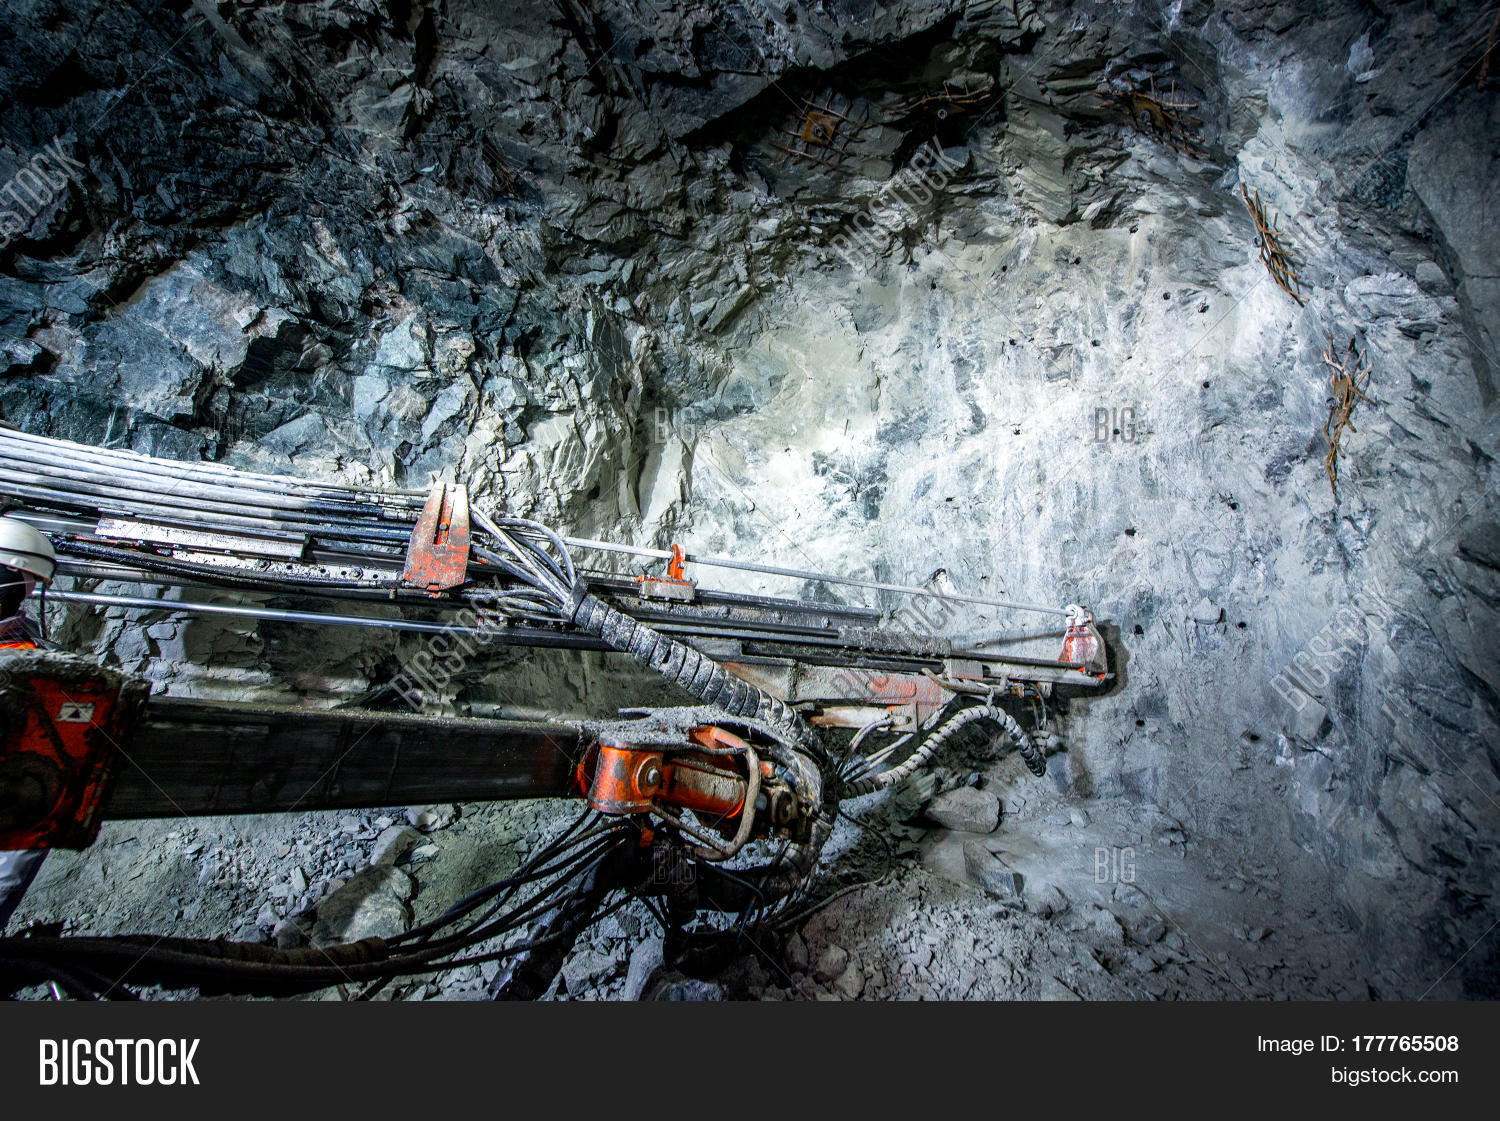 Gold Mining Image & Photo (Free Trial) | Bigstock